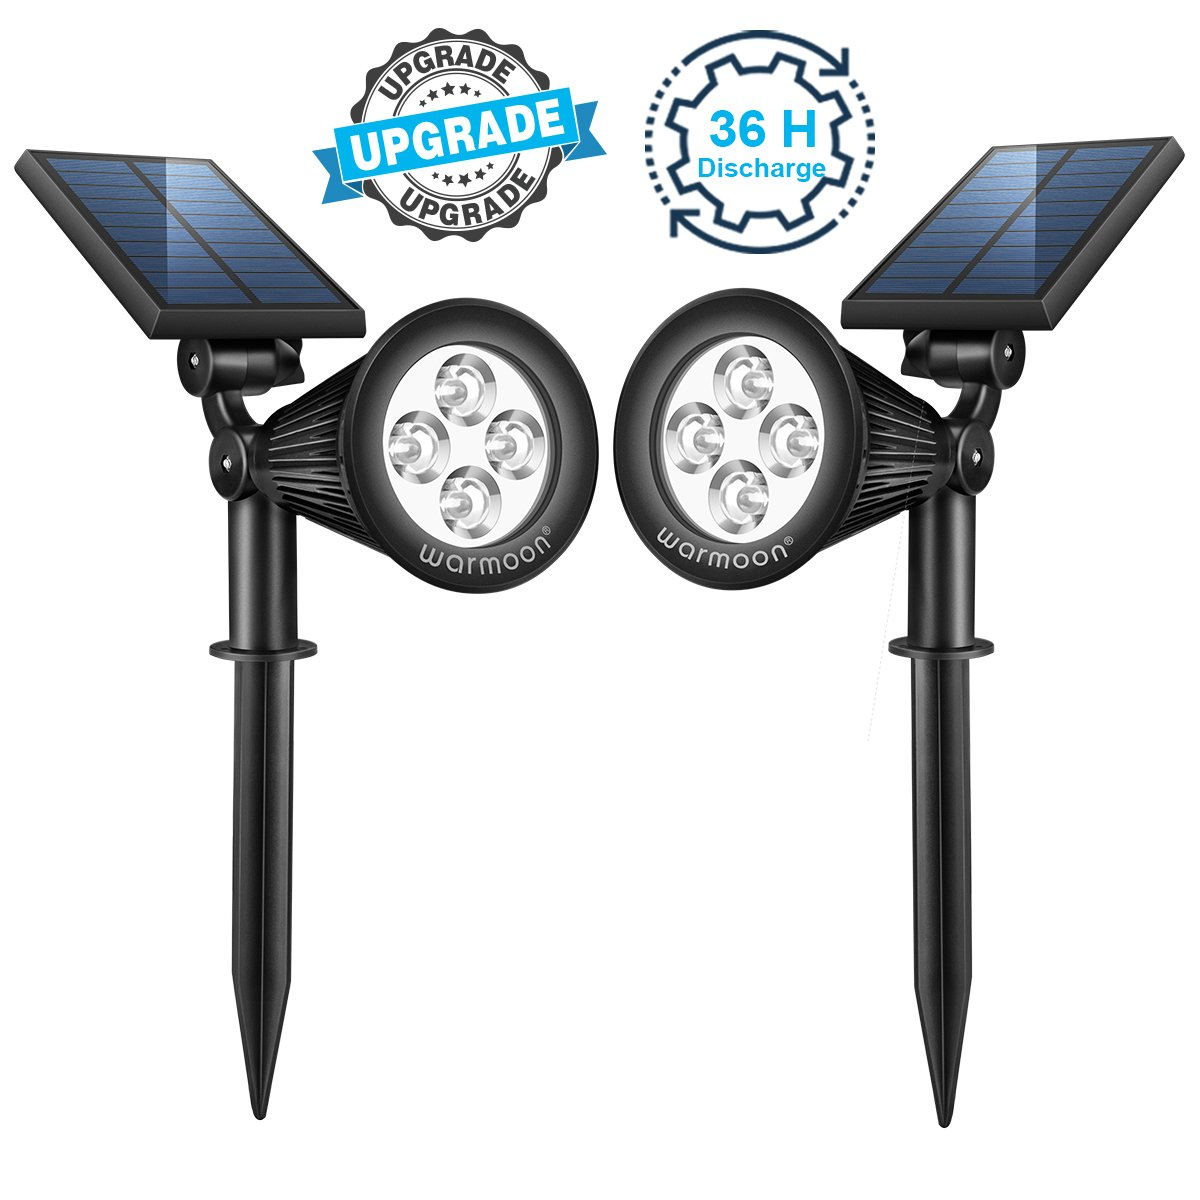 warmoon Solar Lights Outdoor, 2-in-1 Solar Spotlight 180° Adjustable Waterproof LED Landscape Lighting Auto ON/OFF Security Wall Light for Garden Backyard Driveway Patio Pool Daylight White -2 Pack